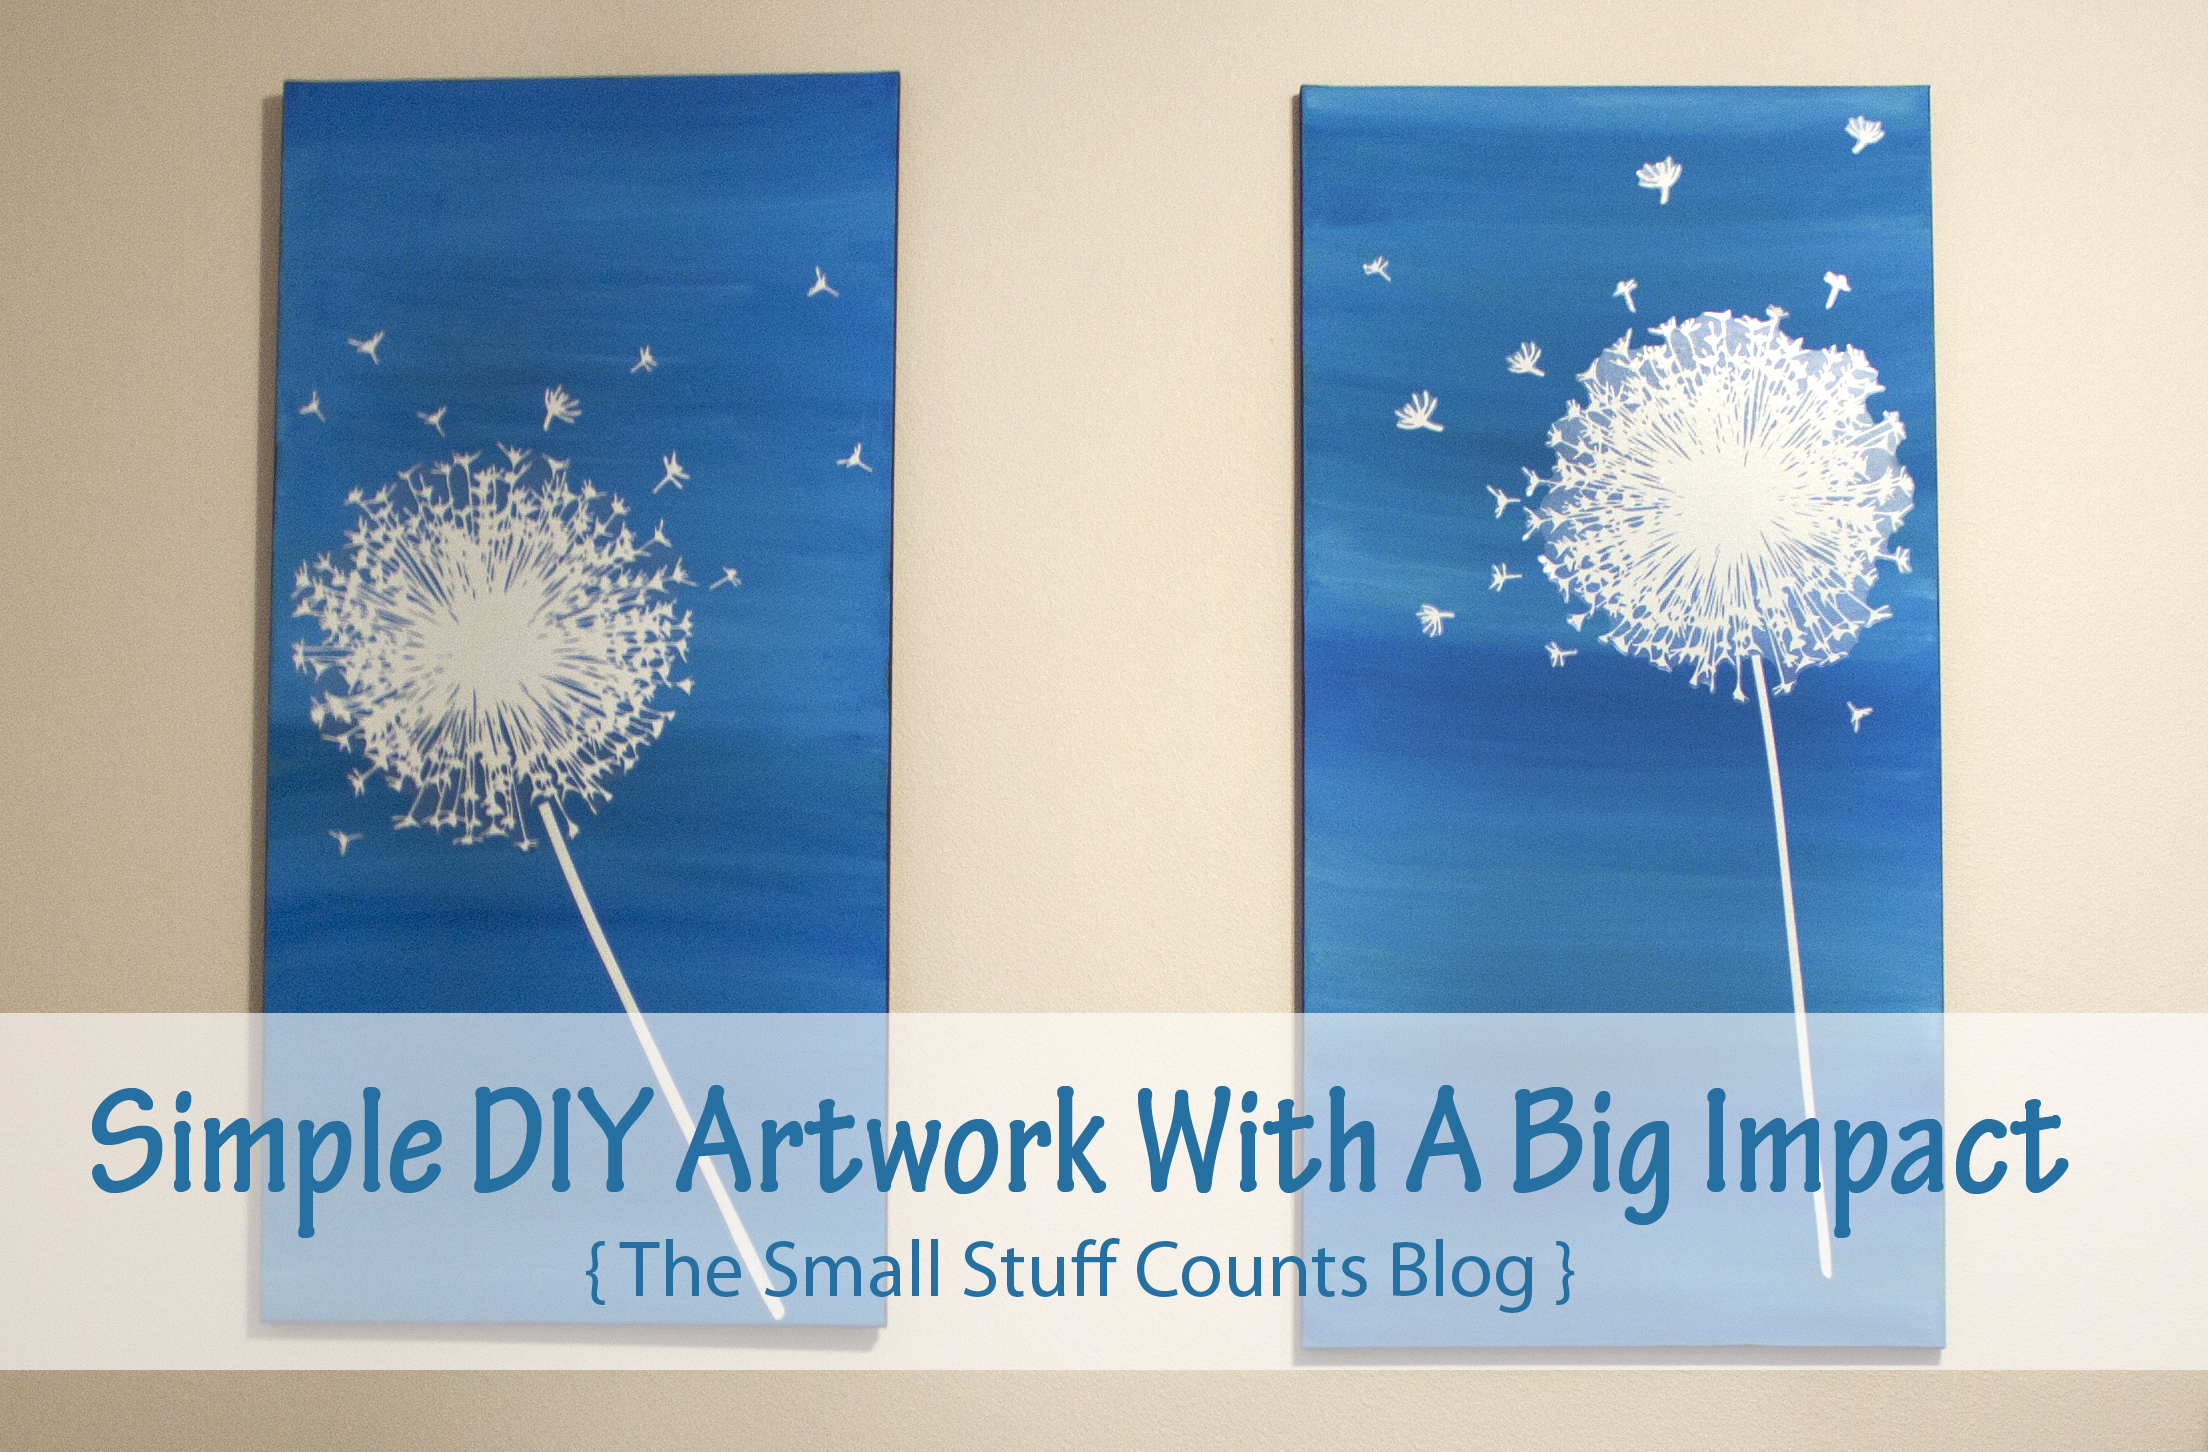 Simple Diy Artwork With A Big Impact Small Stuff Counts